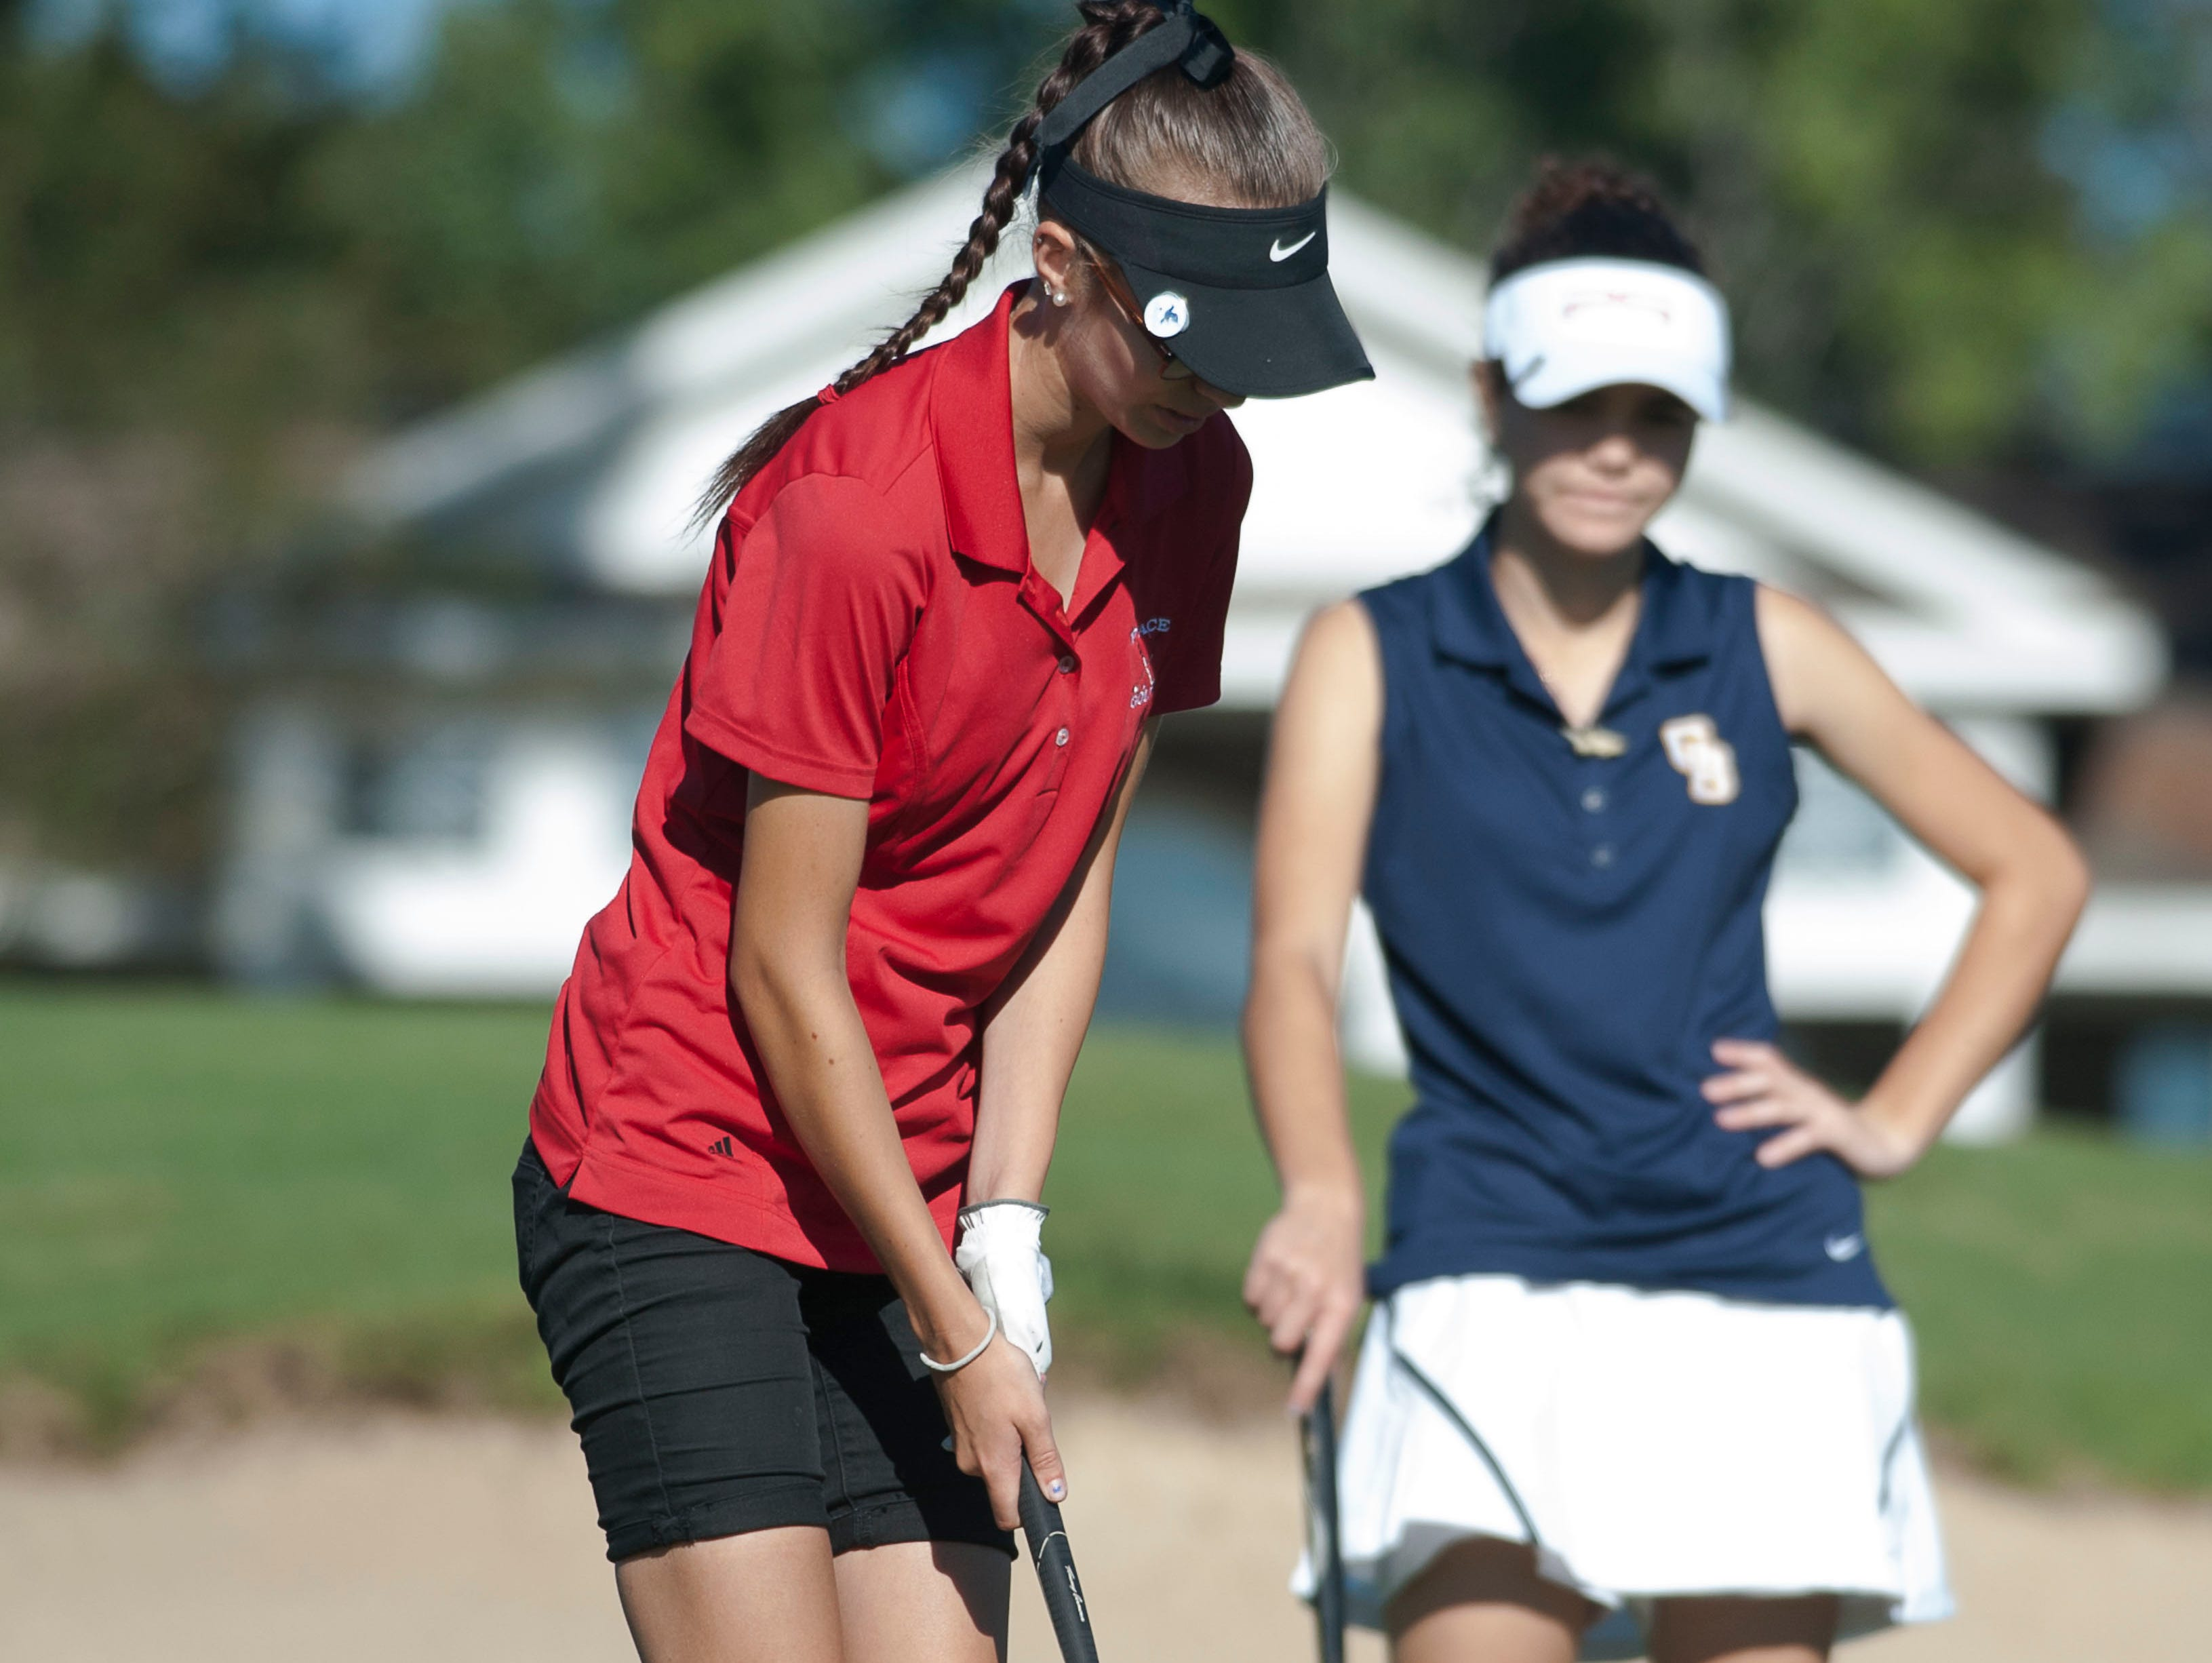 Pace High School's Dina Weaver finishes up her put during the District 1 2A golf tournament at Stonebrook Golf Club Wednesday Oct. 14, 2015.